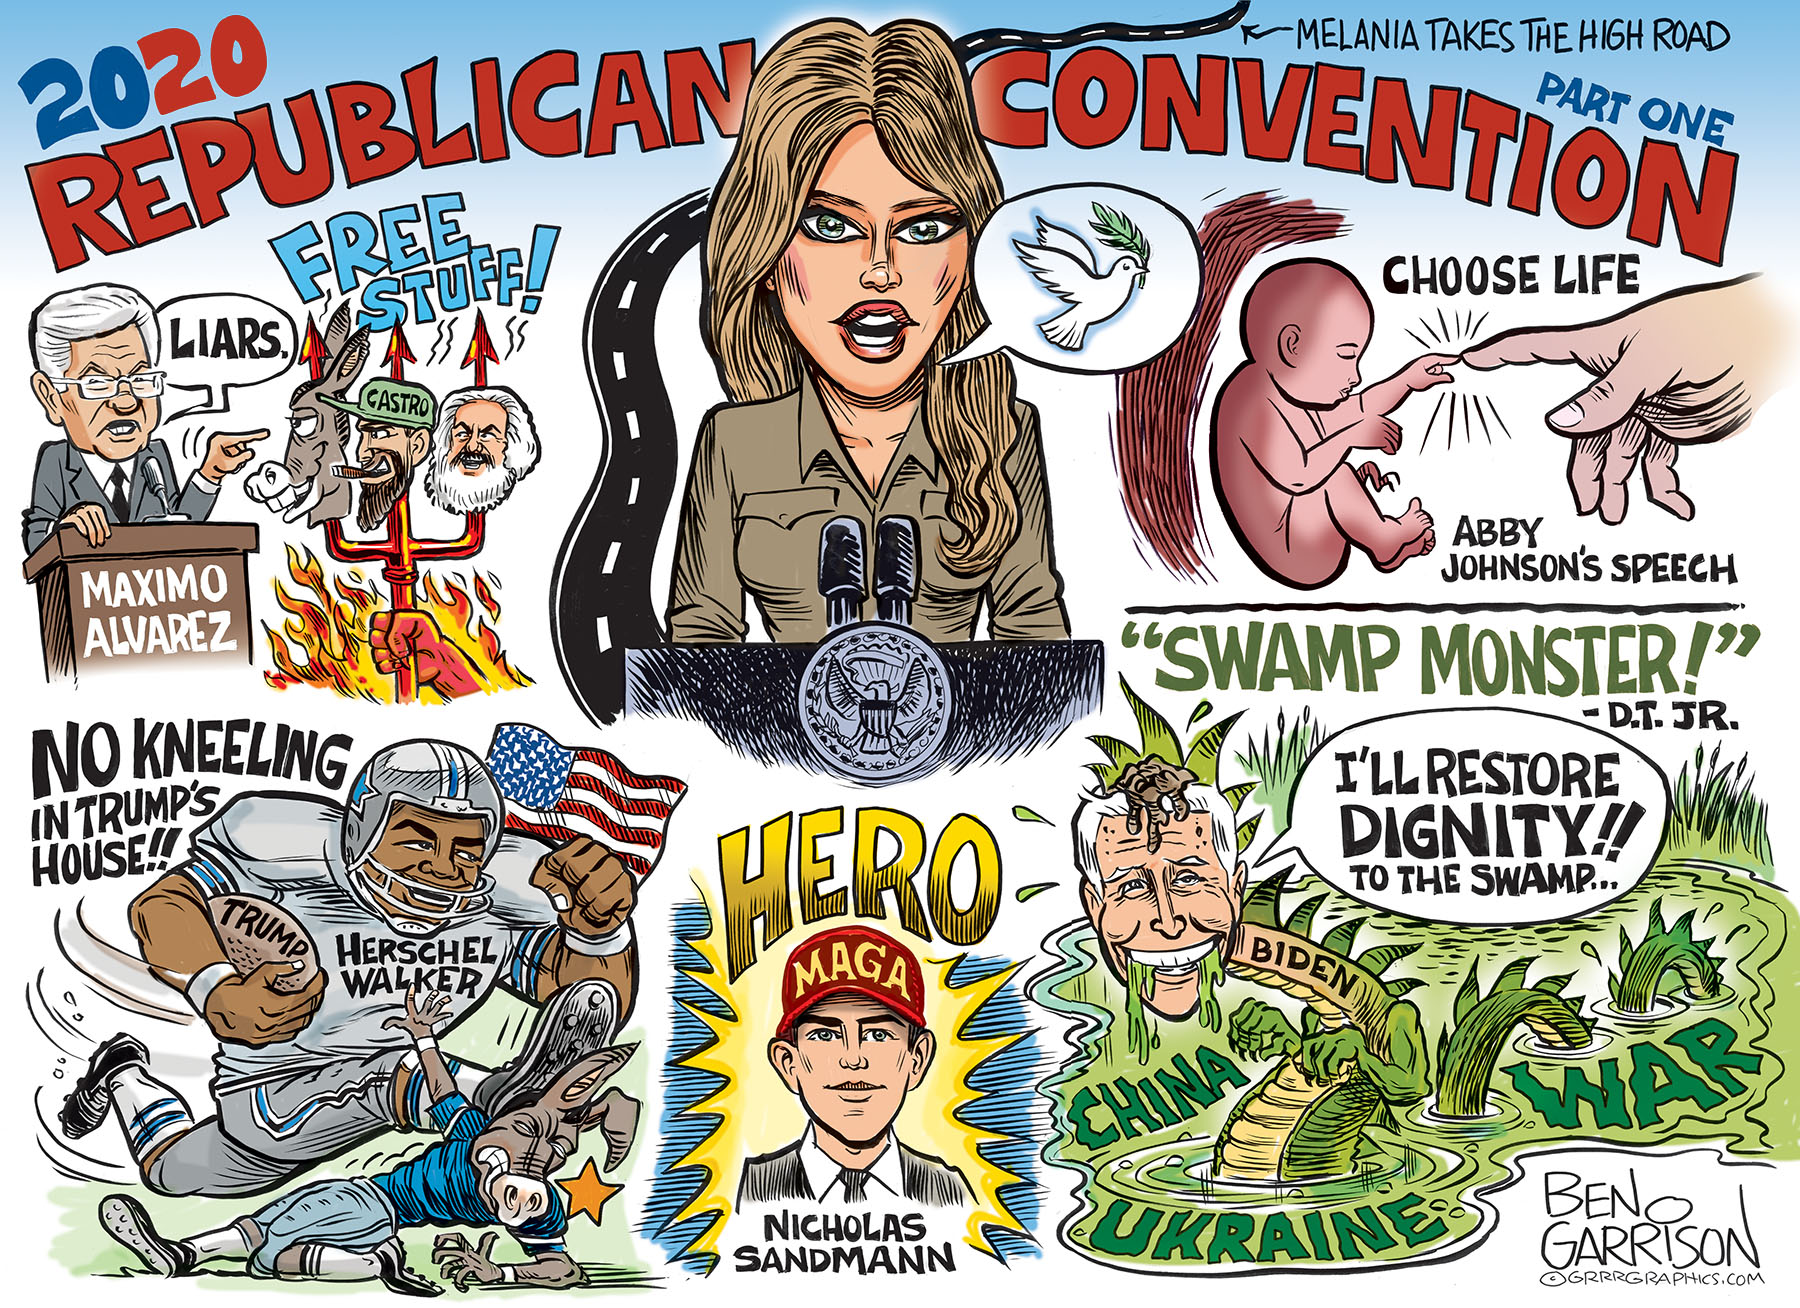 2020 RNC CONVENTION I